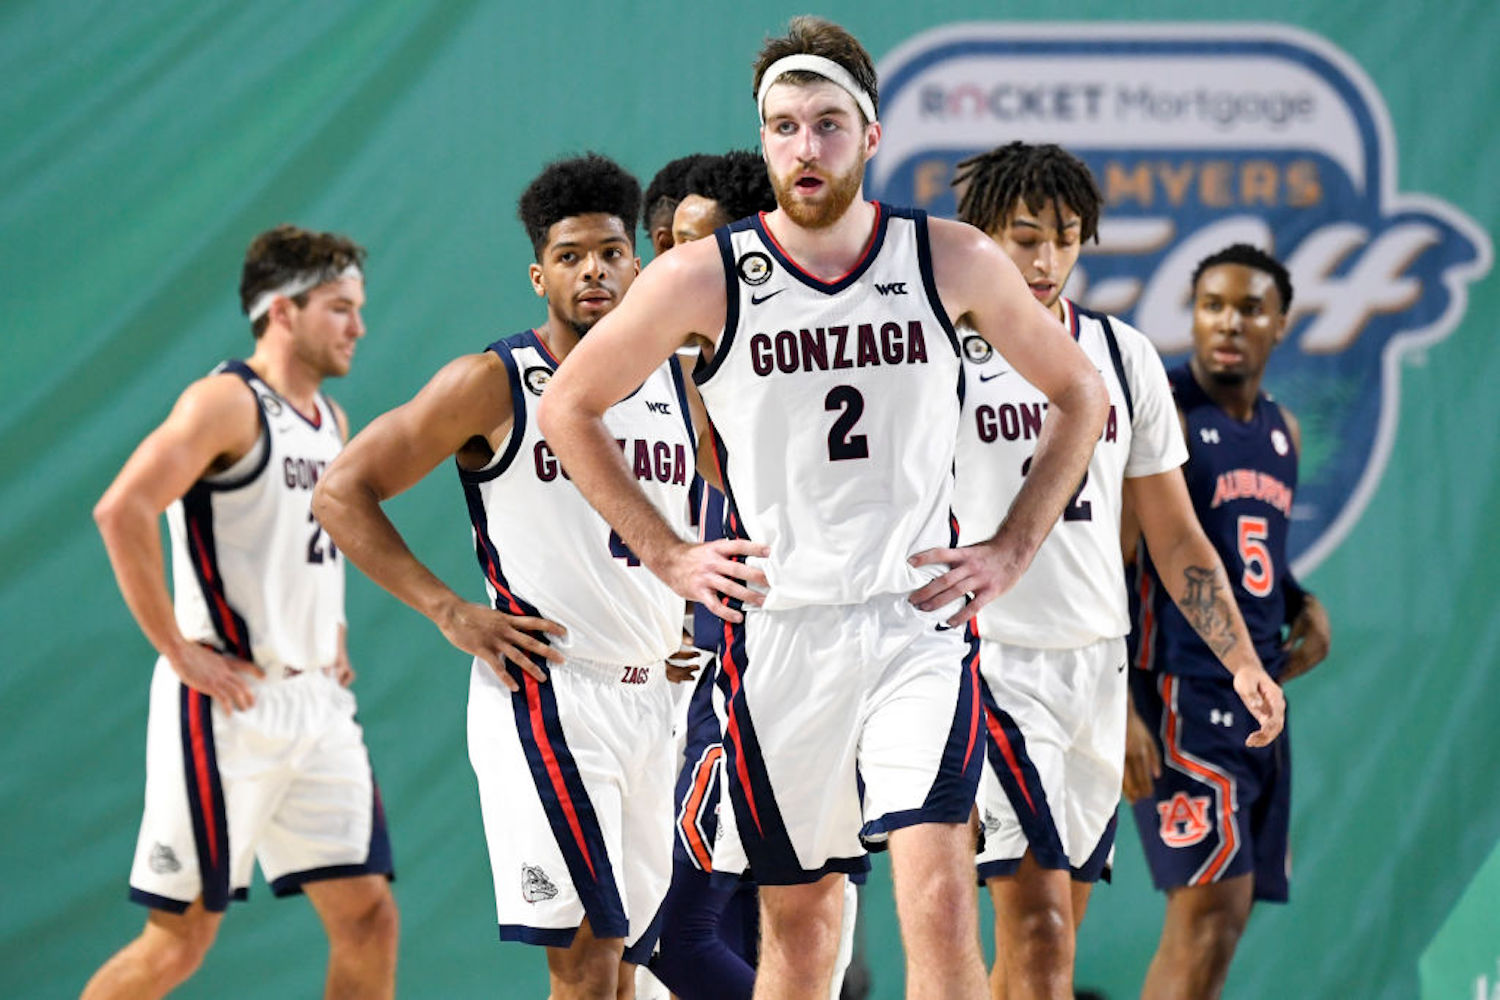 Gonzaga is the favorite to win the NCAA National Championship this year. Its biggest challenger is a deep and experienced Baylor team.